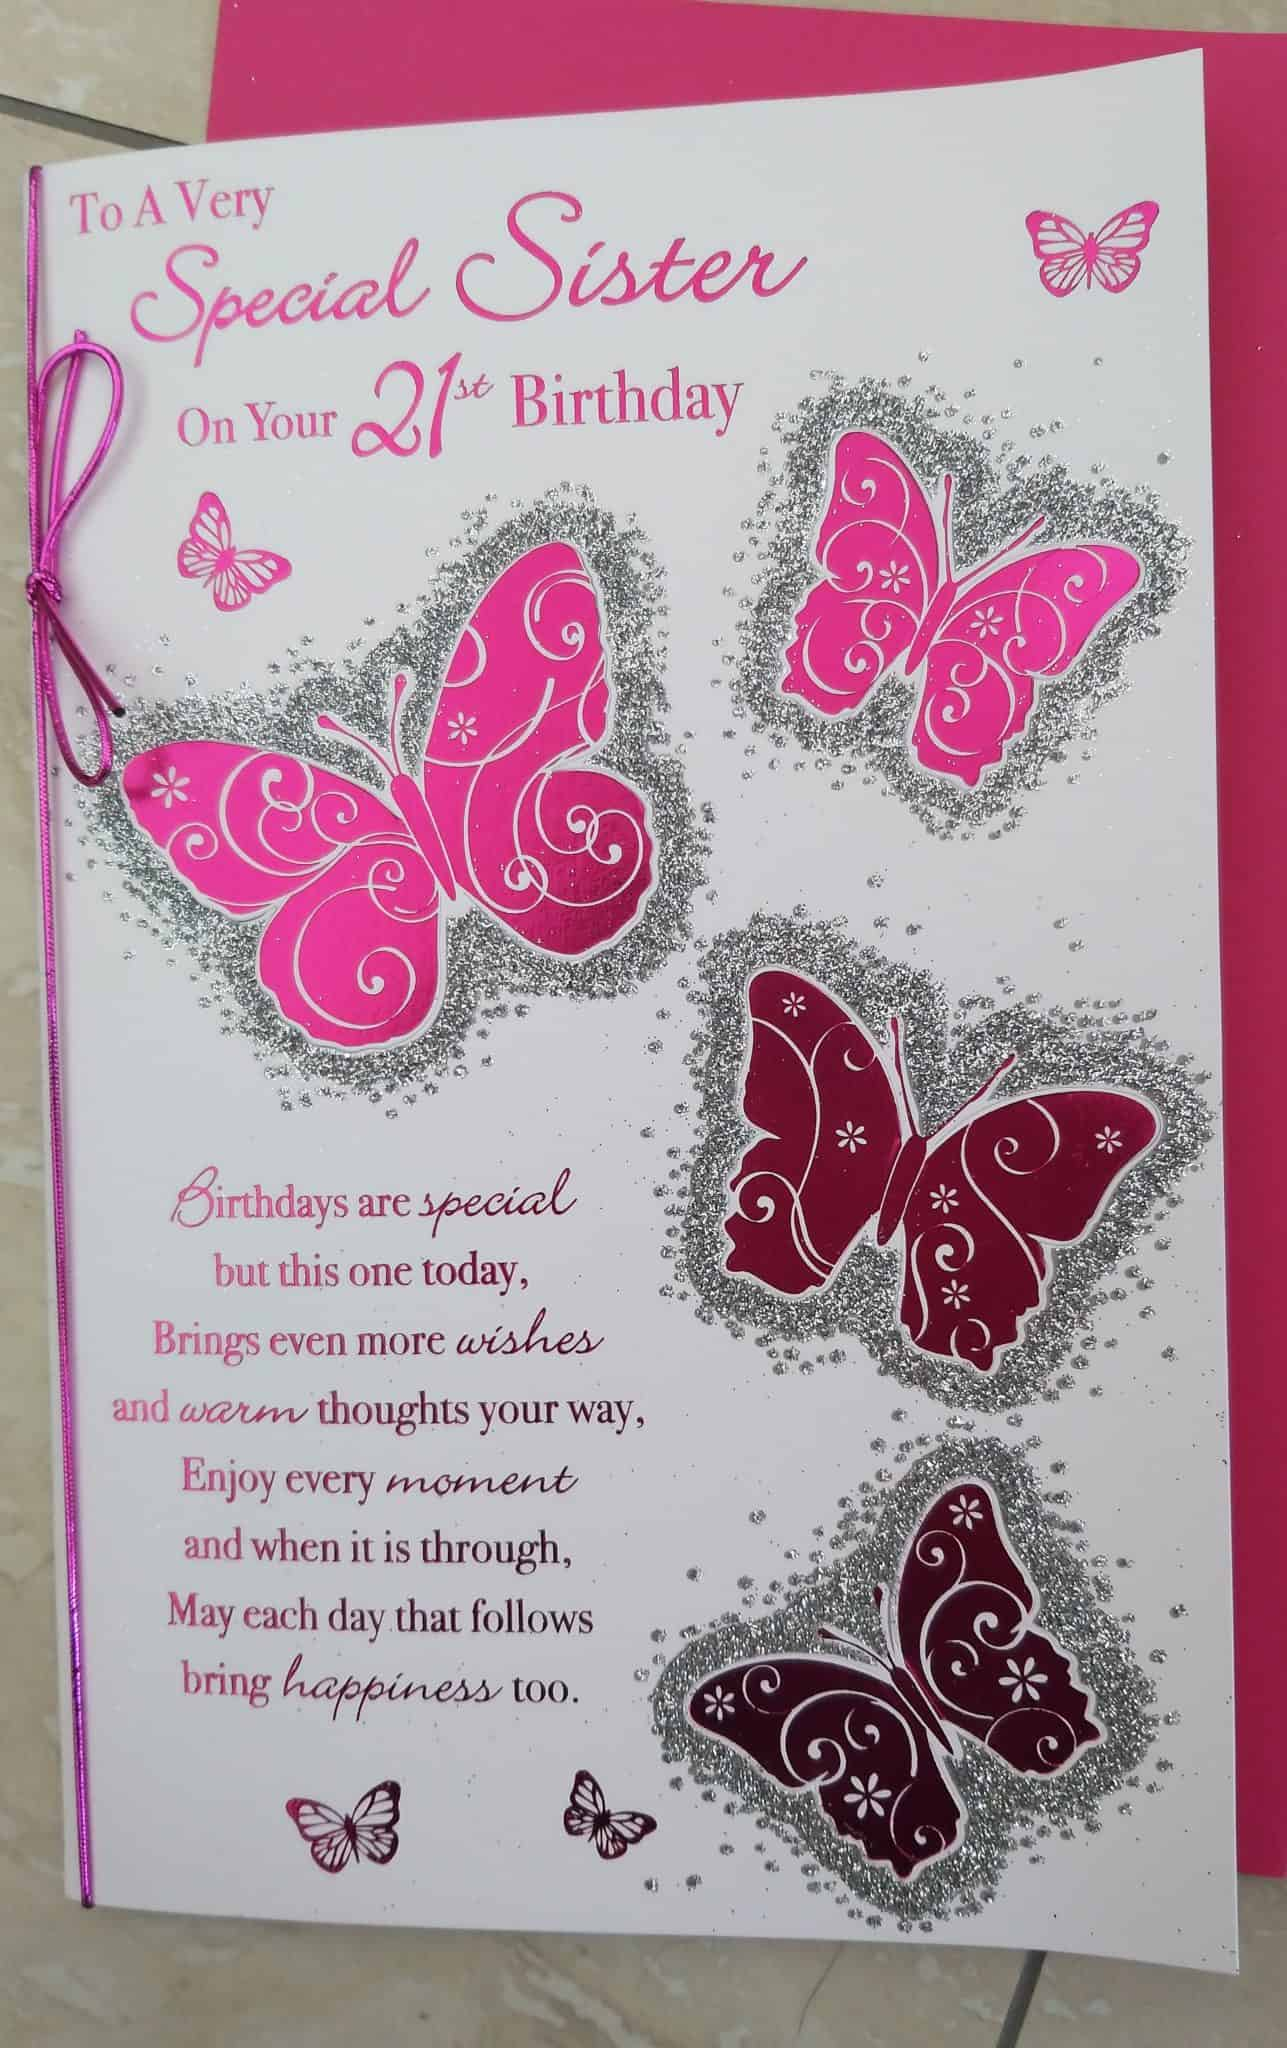 Sister Birthday Card 21st With Butterflies And Sentiment Verse 20190522 143013